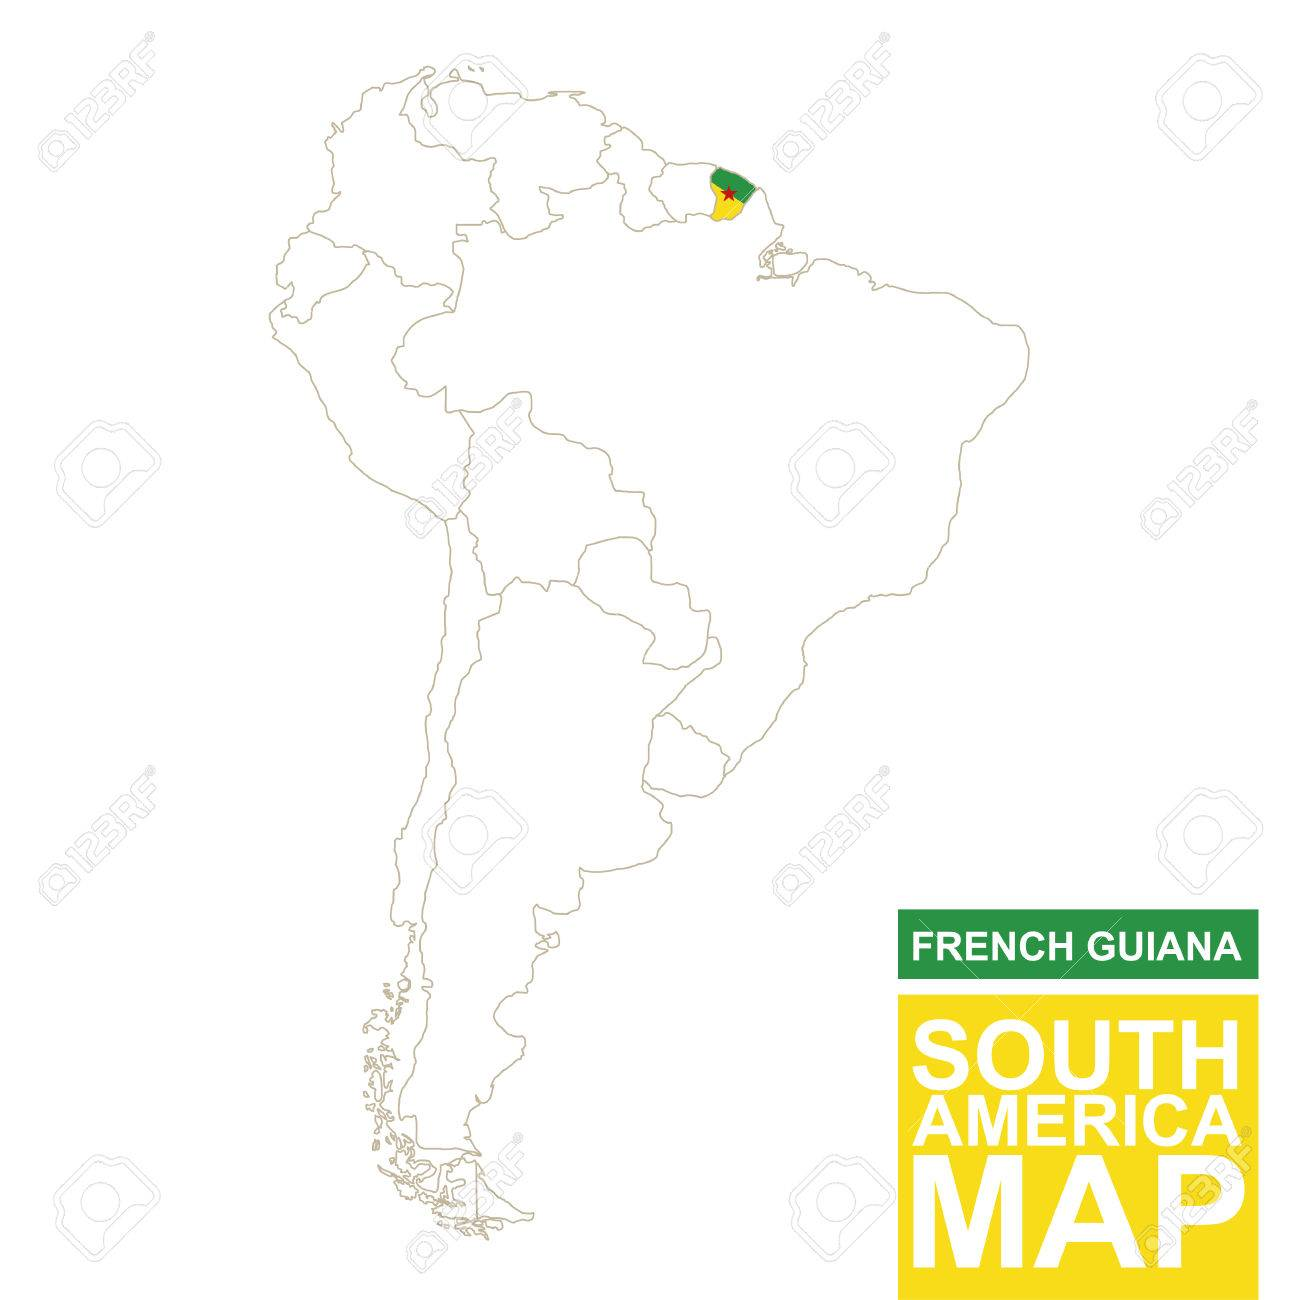 South America Contoured Map With Highlighted French Guiana French - South america french guiana map